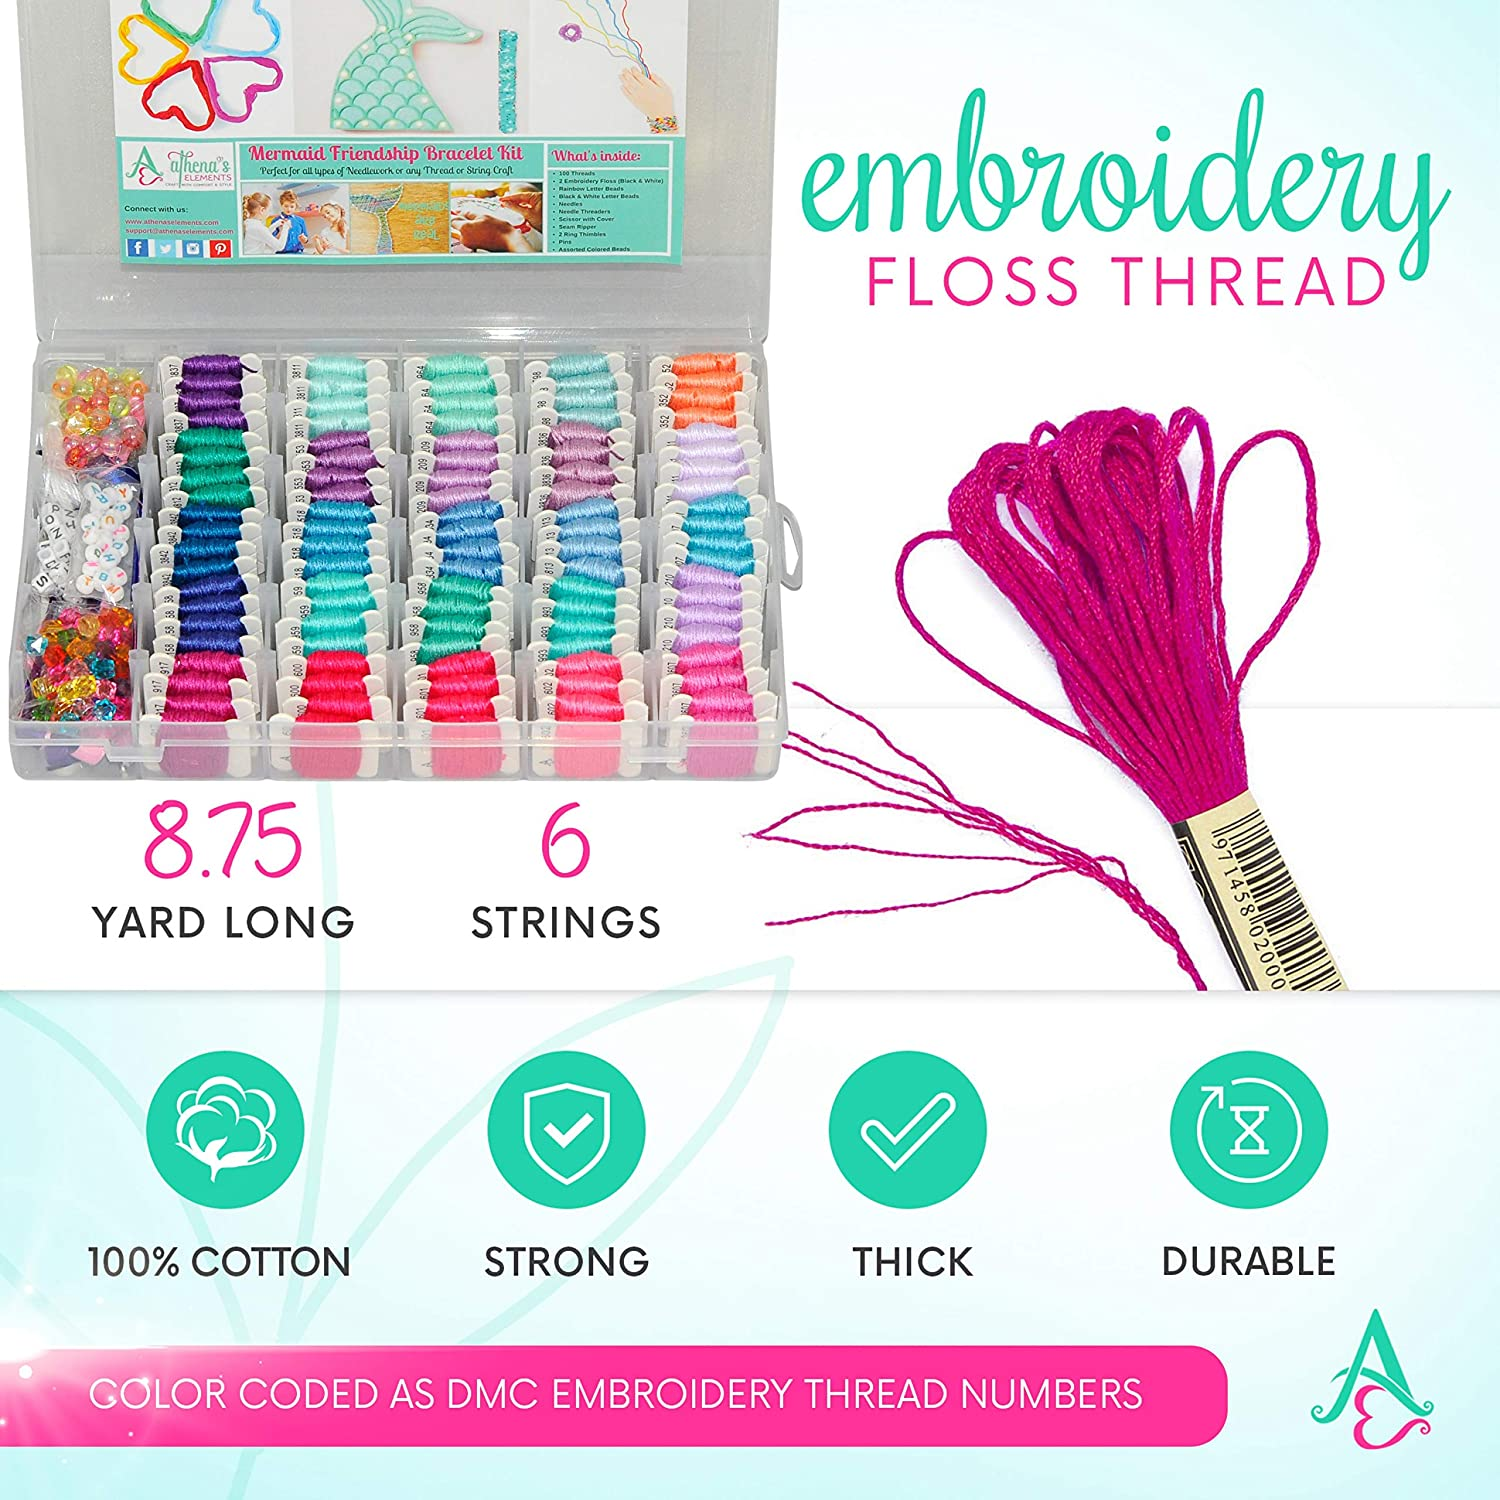 Colors are Coded Embroidery Floss Numbers- Cross Stitch Perfect Gift for Girls 7 to 12 String Thread Craft Supplies Mermaid DIY Friendship Bracelet String Kit Embroidery Thread and Accessories